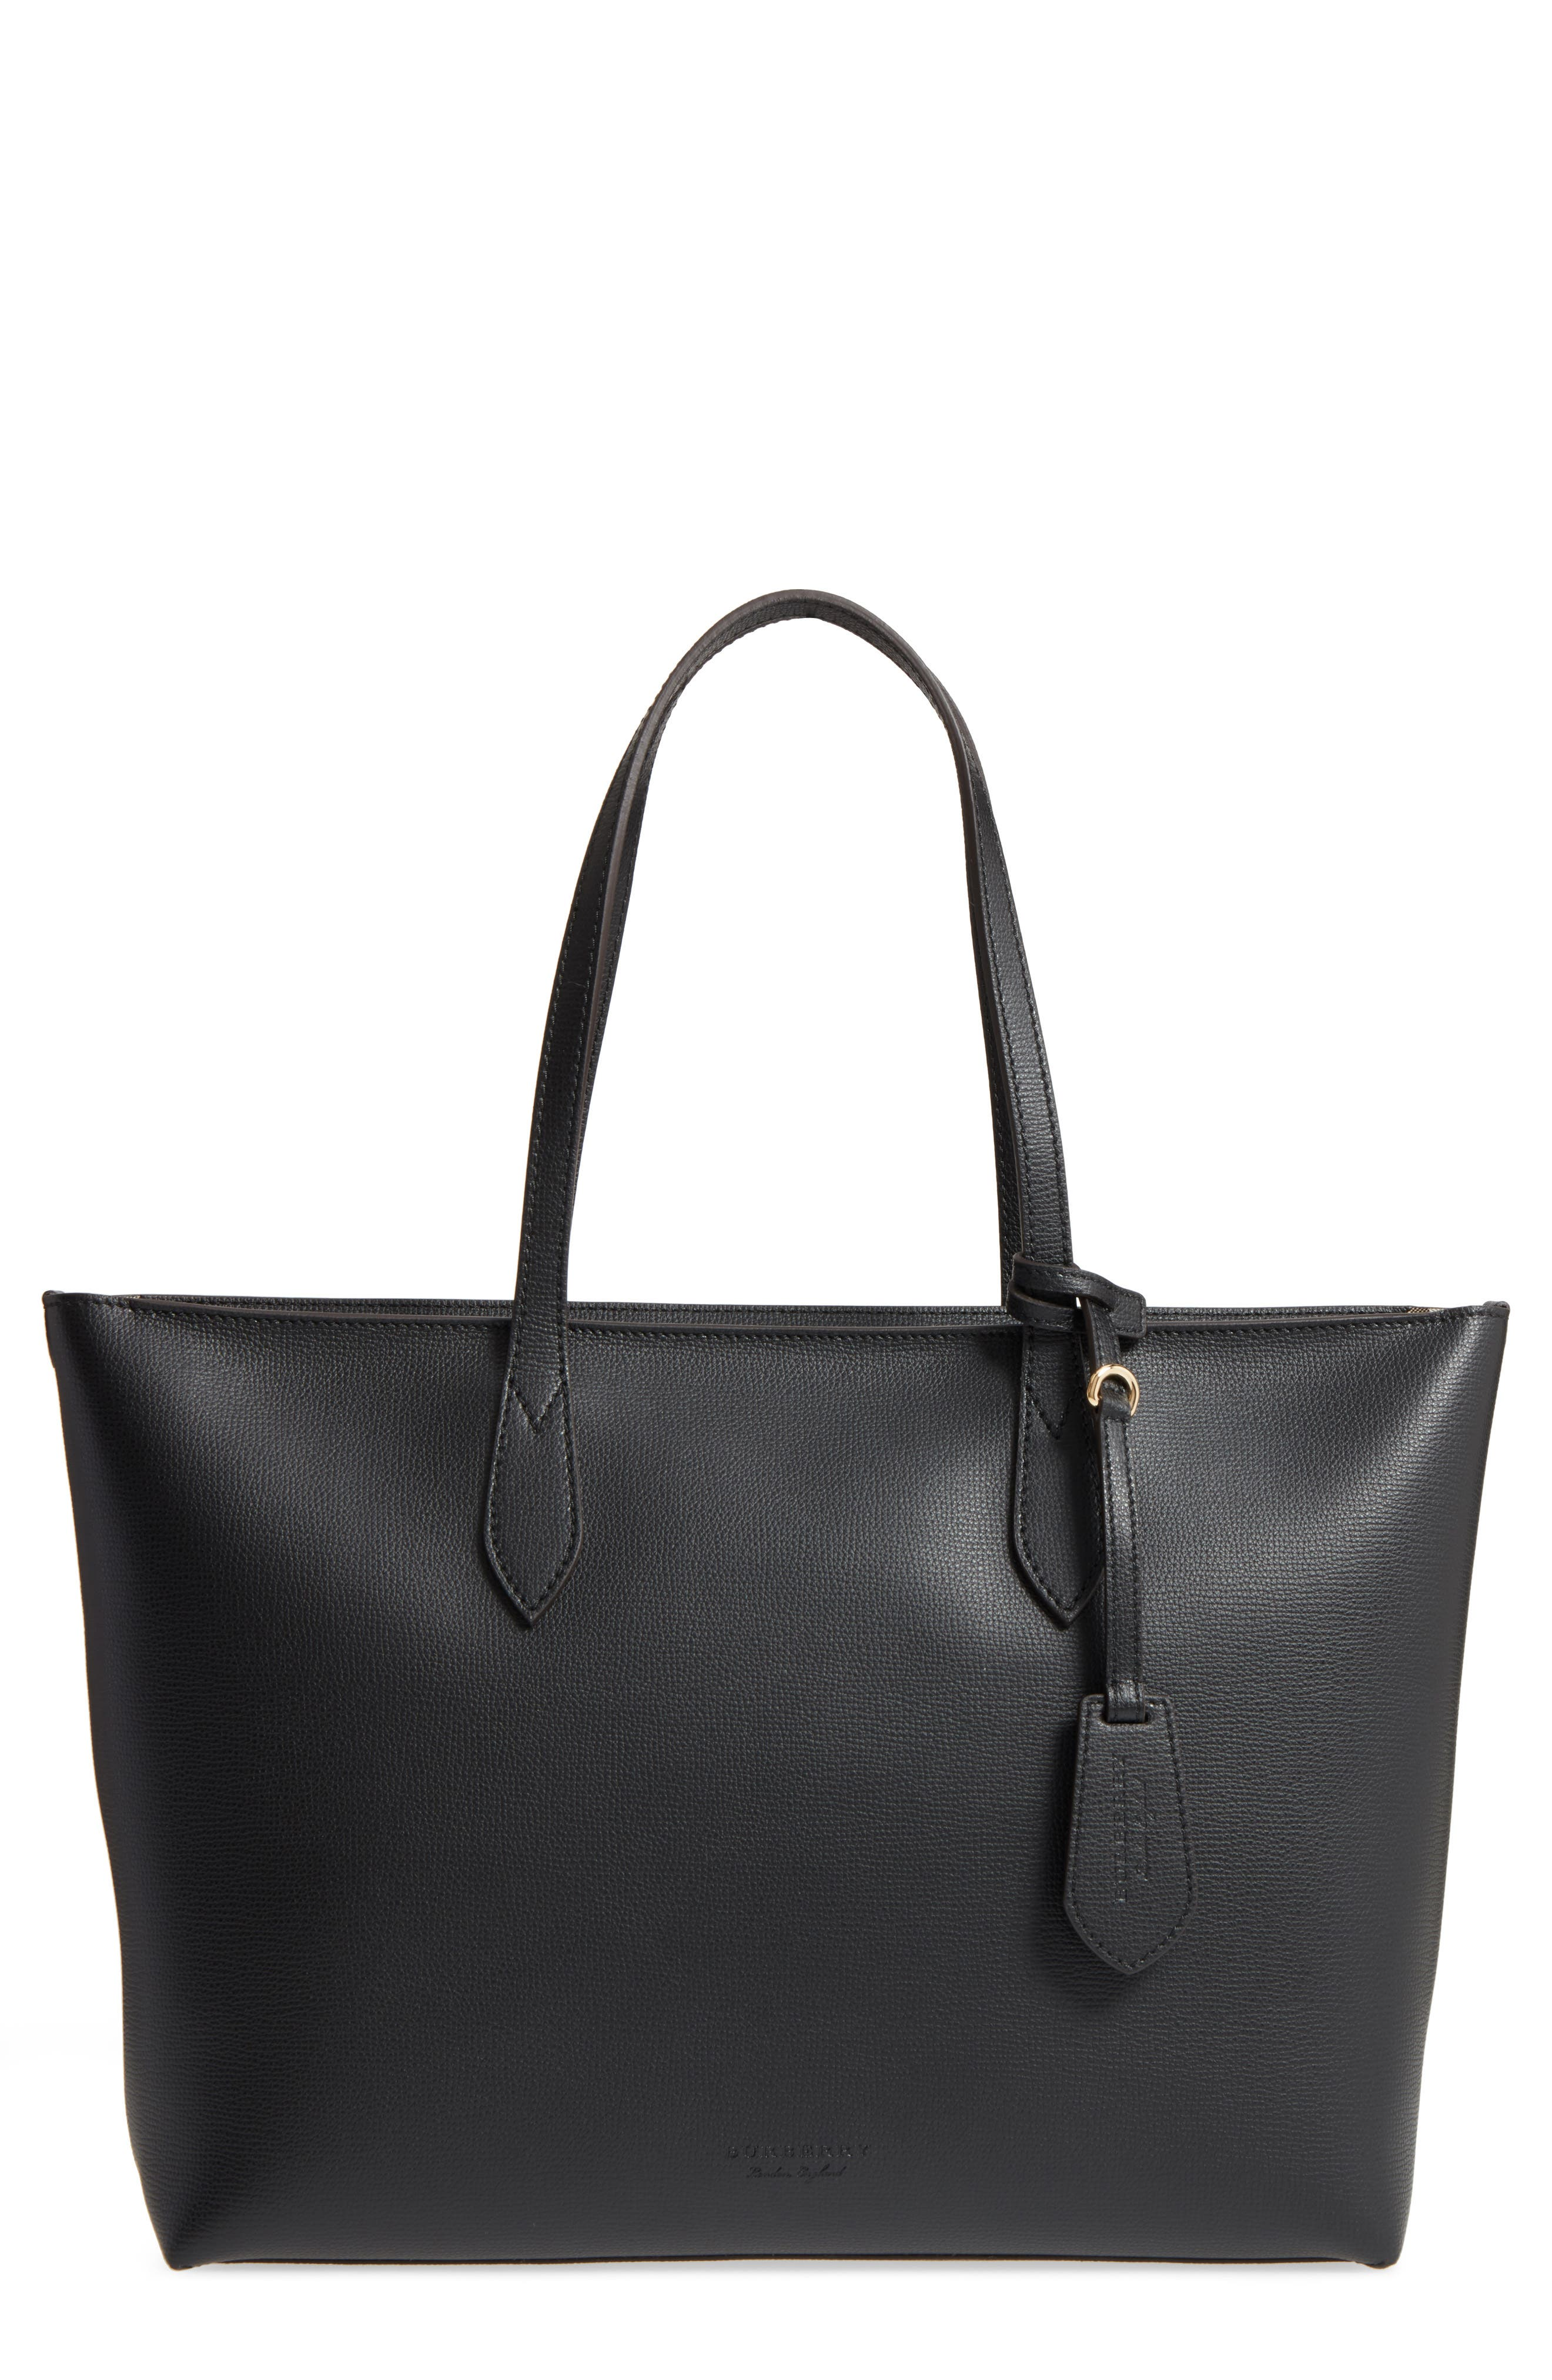 Calfskin Leather Tote,                             Main thumbnail 1, color,                             Black